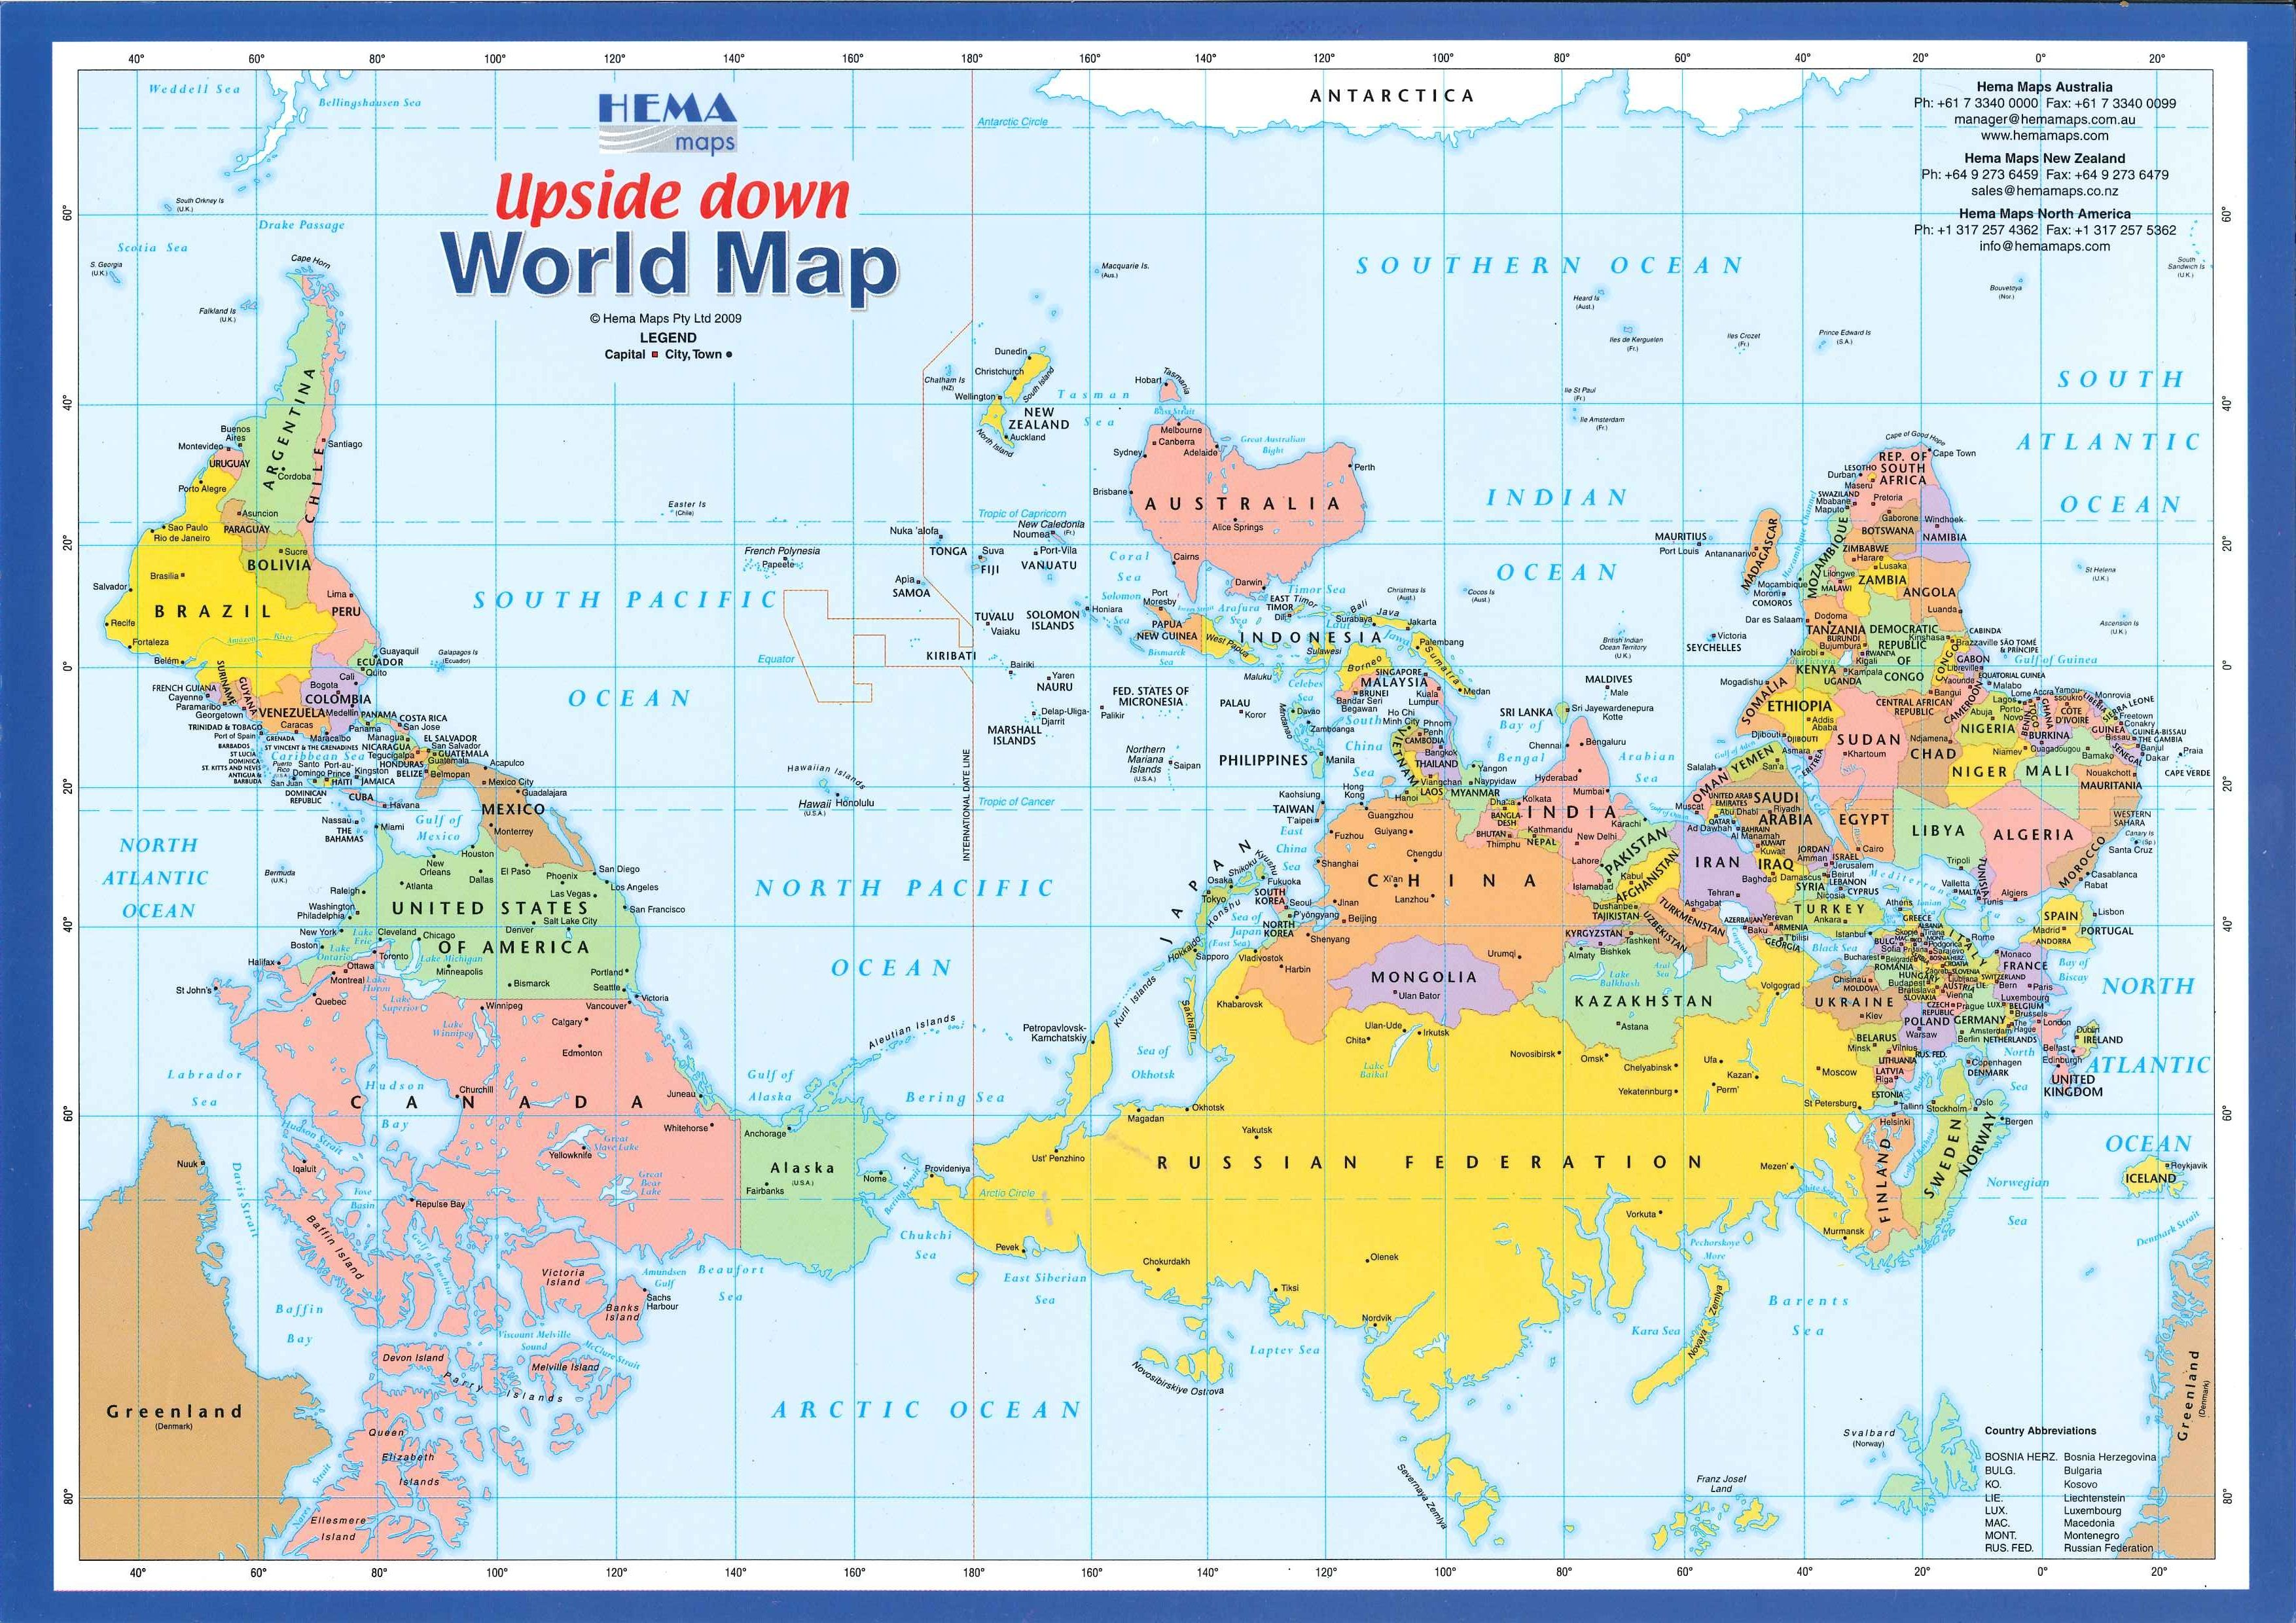 World Map Upside Down Map with a Difference ; ) ••Upside DOWN WORLD MAP•• (3508 × 2480px